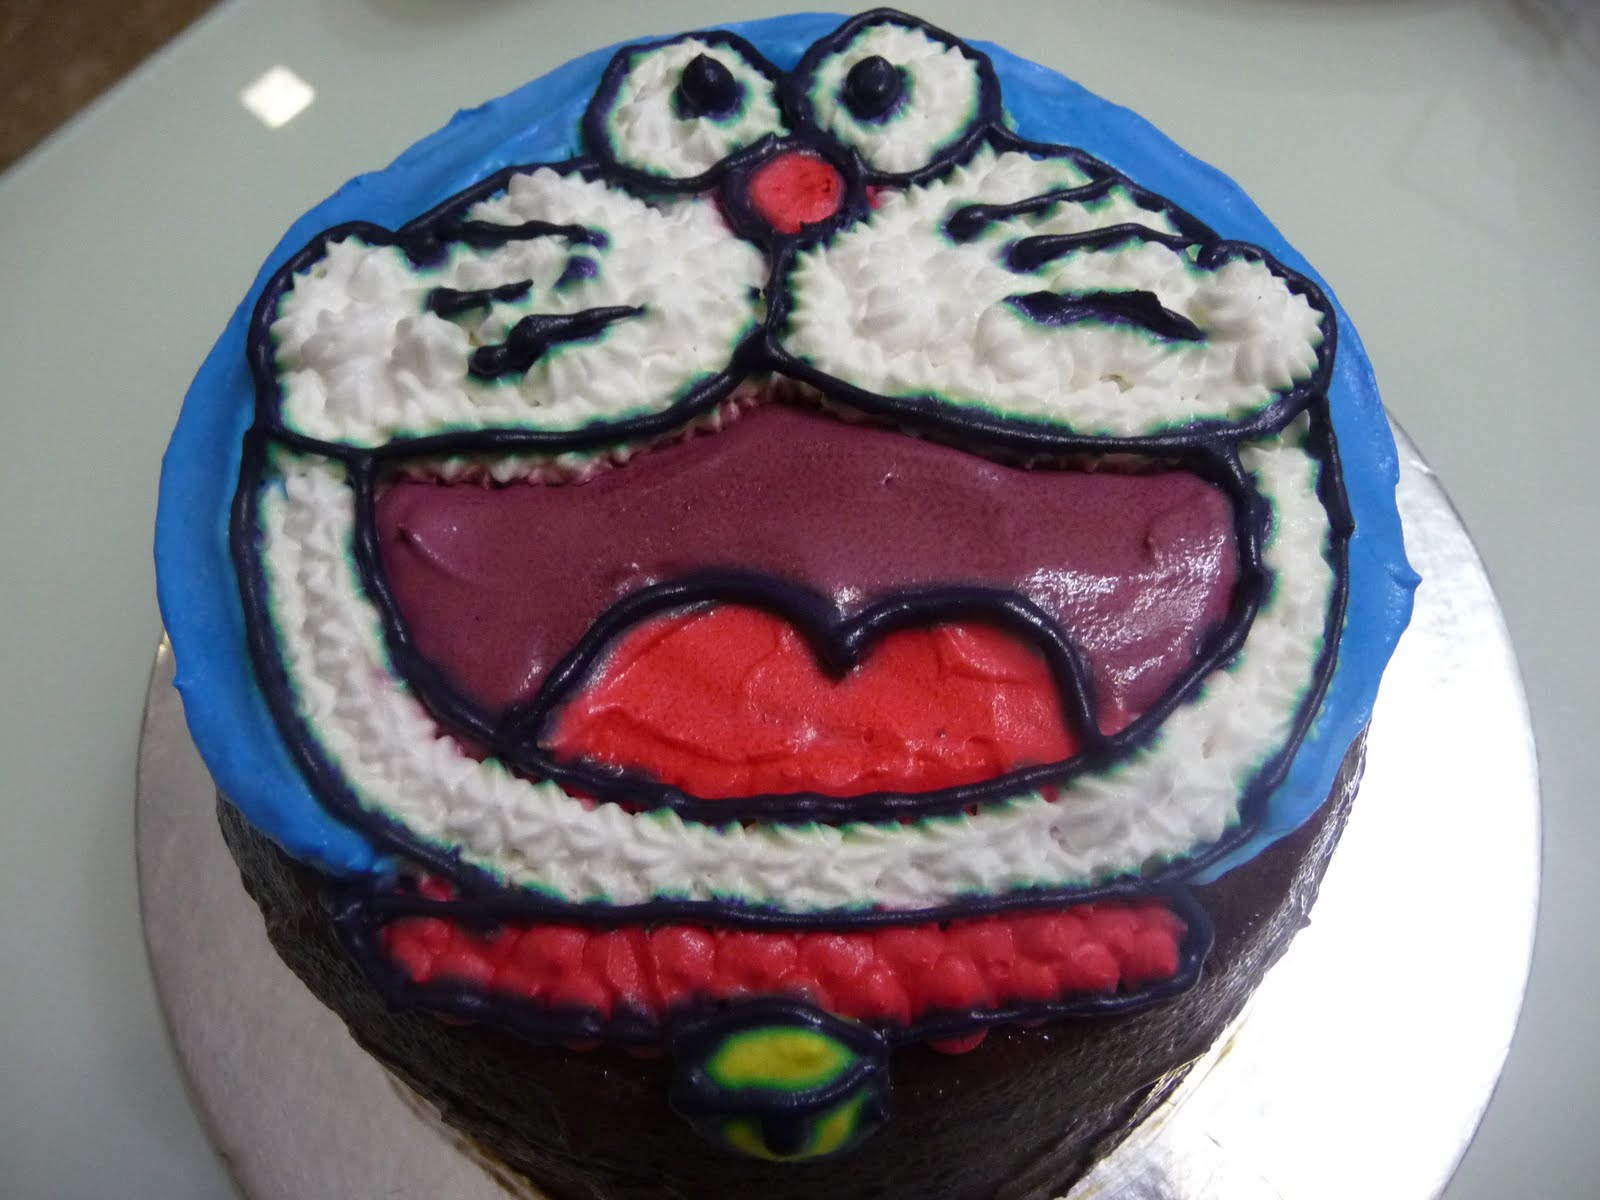 ... birthday song with a symbolic candle pluck onto the nose of Doraemon